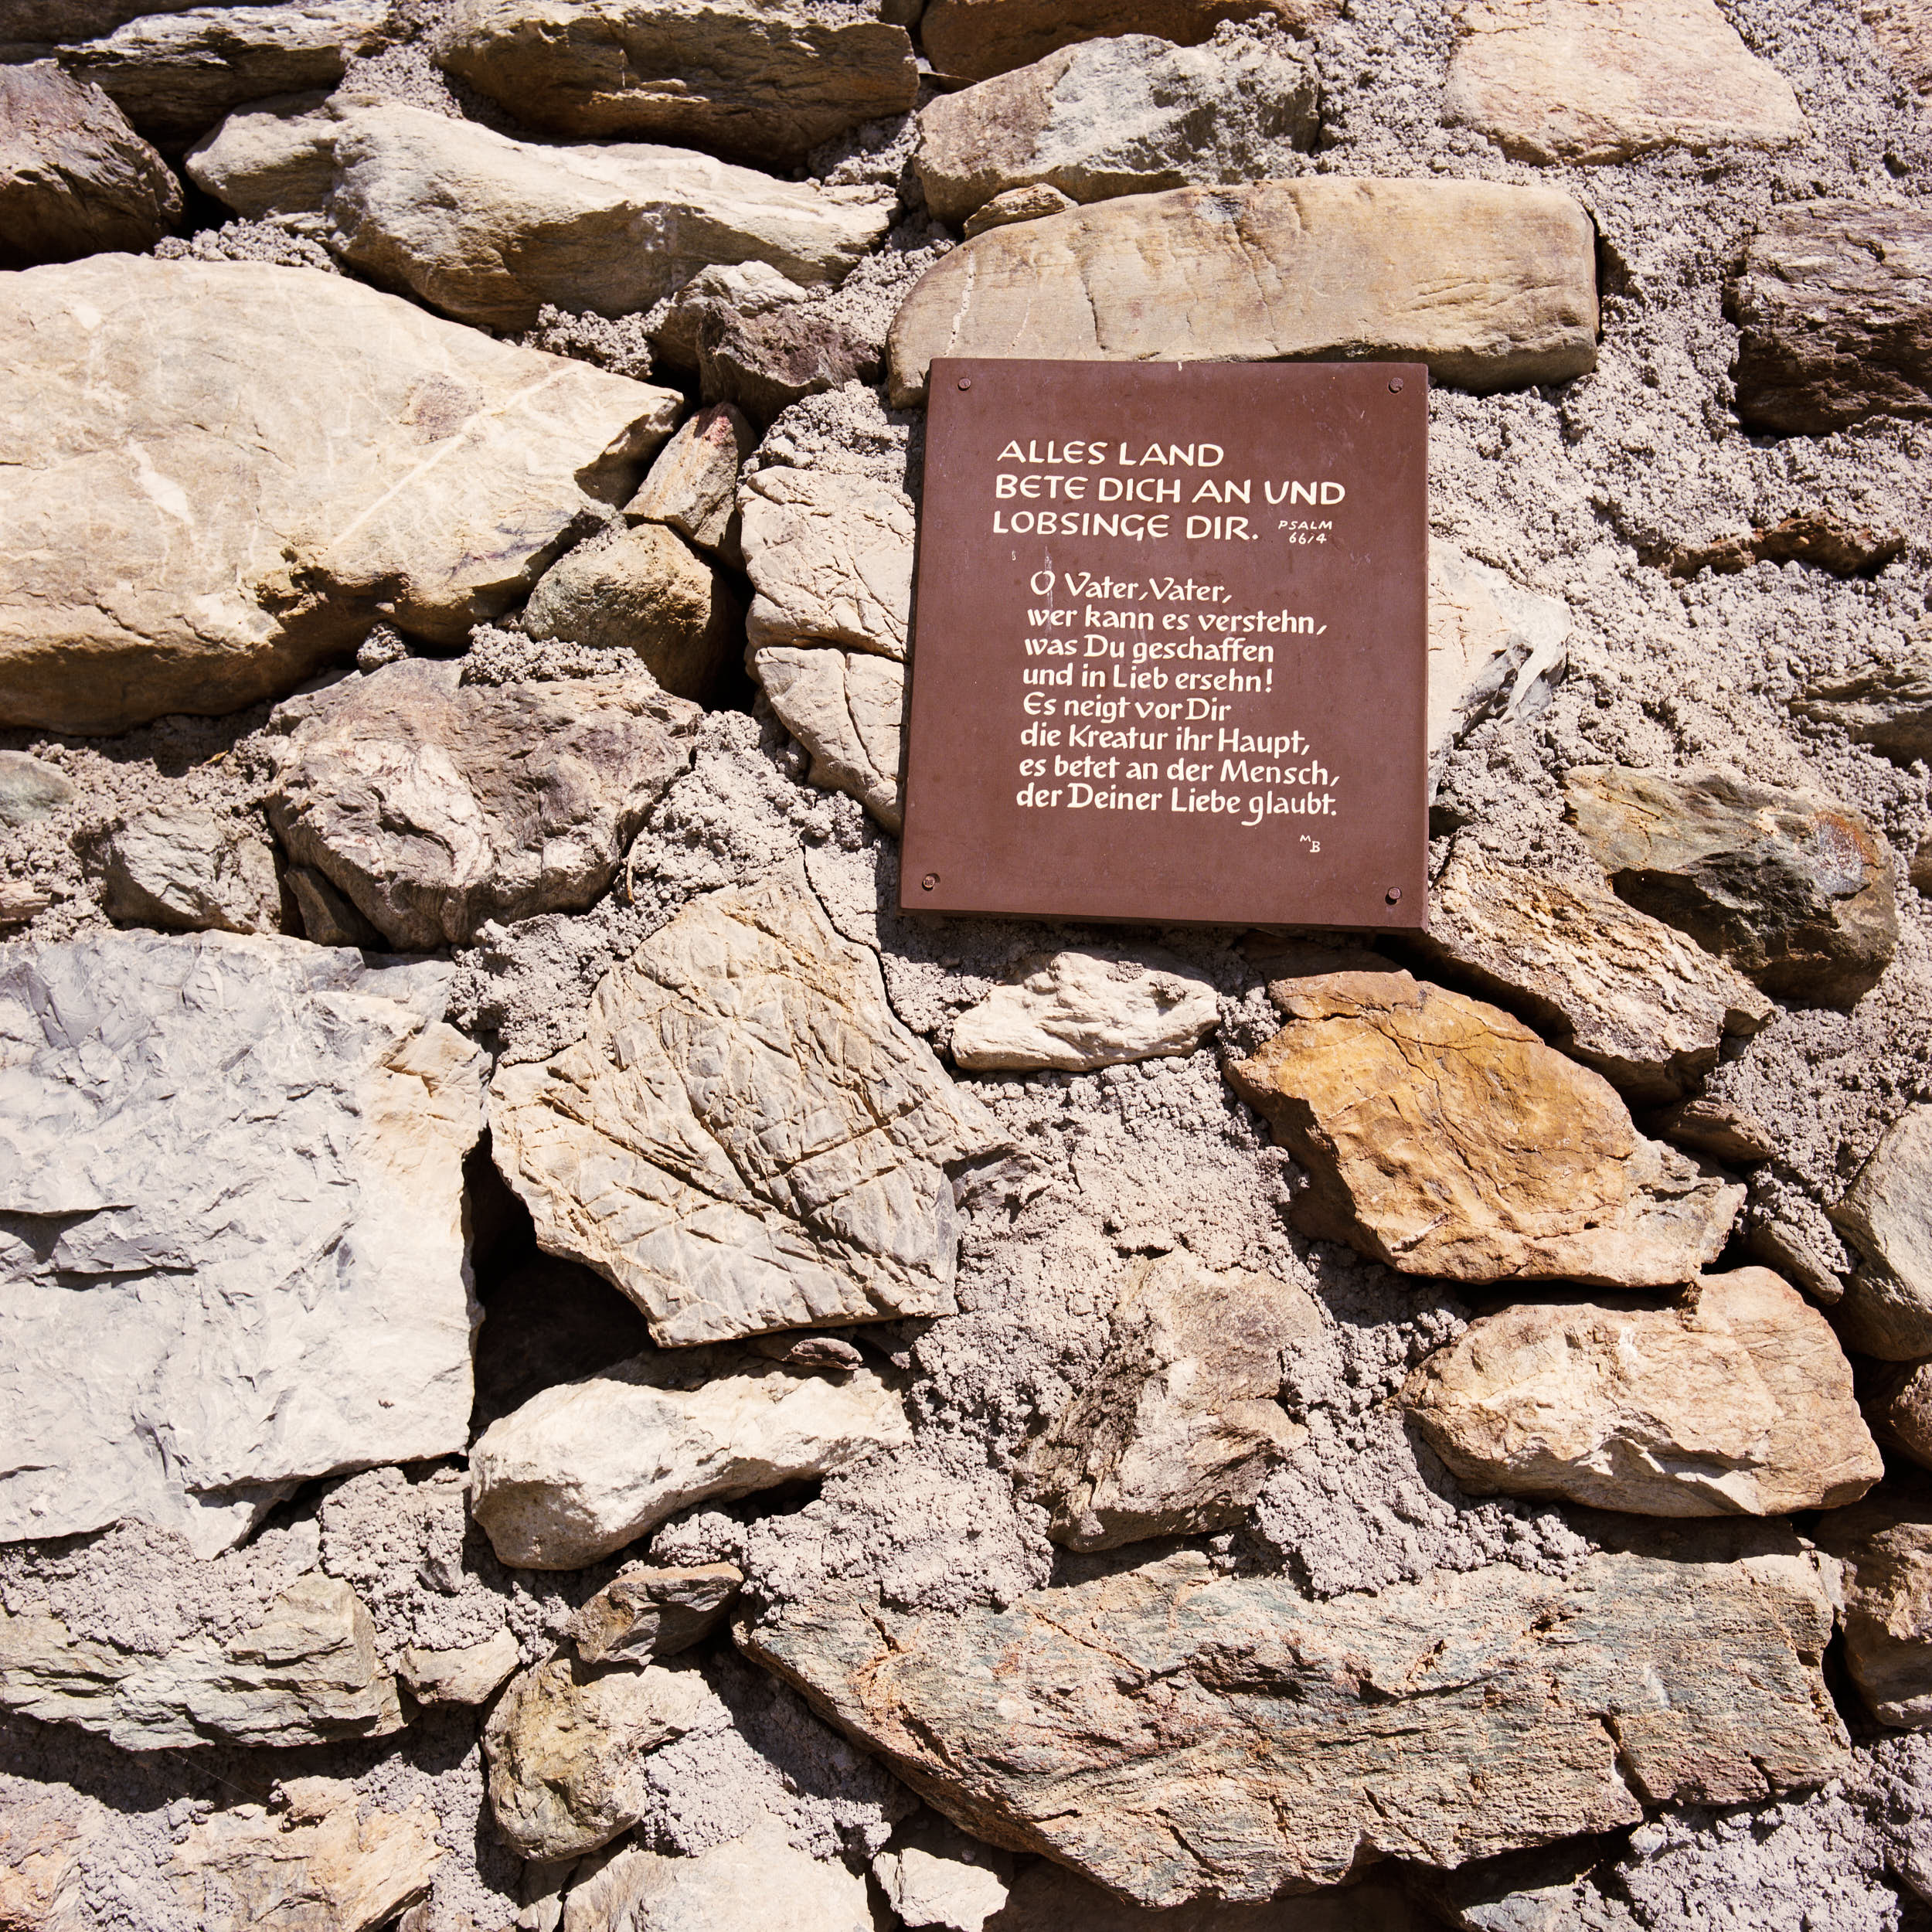 Medium format documentary photography: religious signpost attached to a rock in an austrian alpine village.